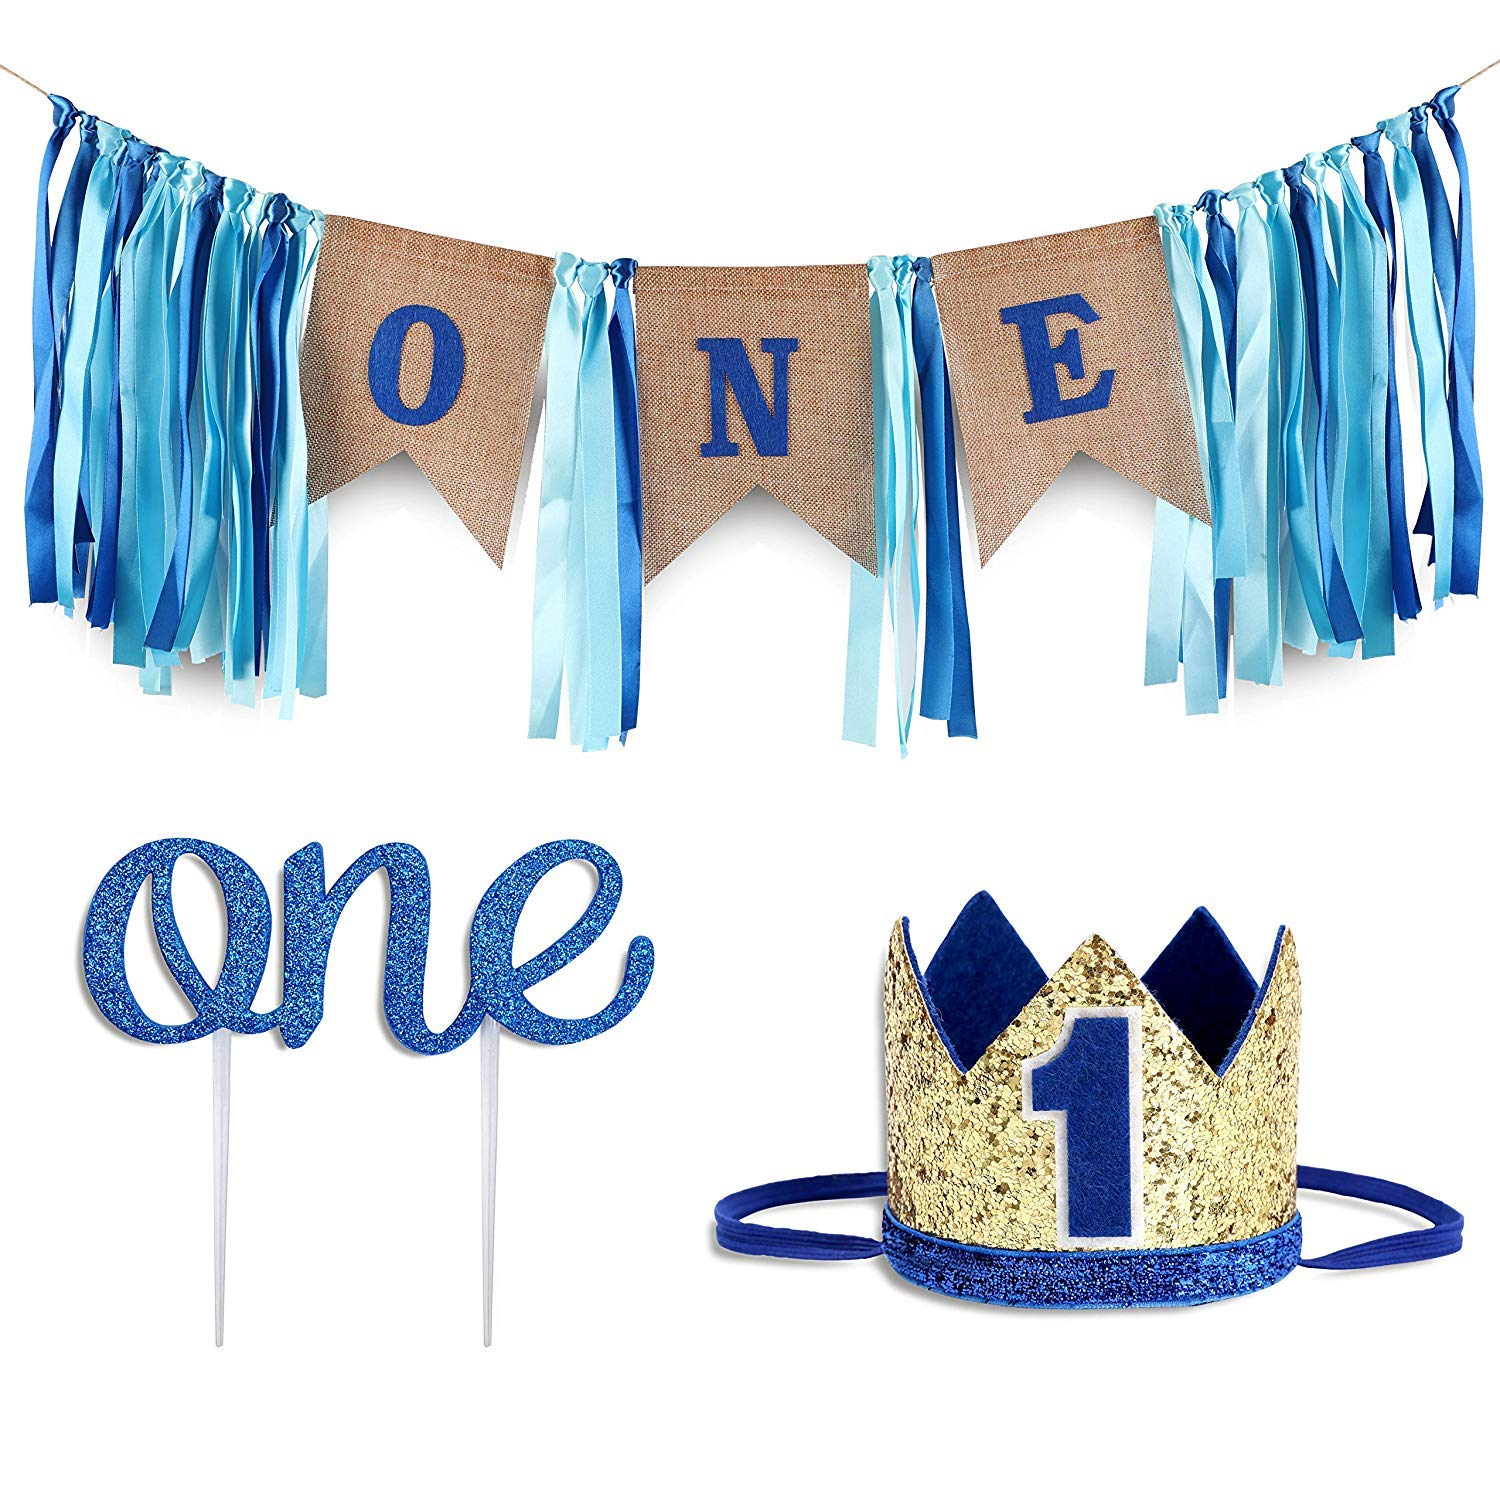 Baby 1st Birthday Boy Decorations WITH Crown - Baby Boy First Birthday Decorations High Chair Banner - Cake Smash Party Supplies - Happy Birthday ONE Burlap Banner, No.1 Crown by PartyHooman